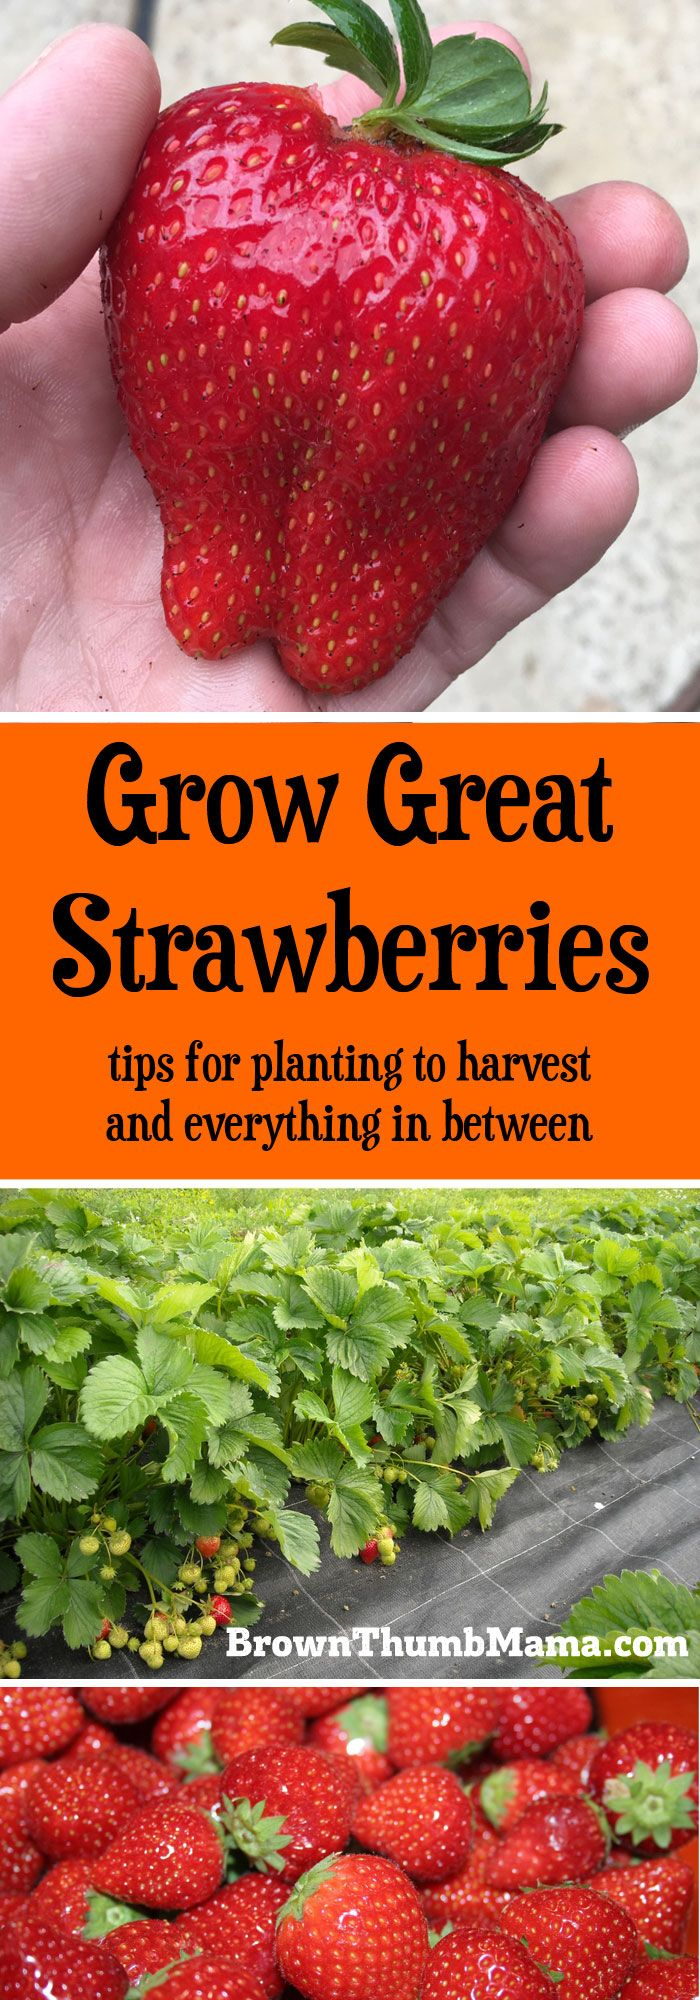 Strawberries are super-easy to grow, but there are a few important tips to keep in mind. Here's everything you need to know to grow gallons of #strawberries in your #garden.